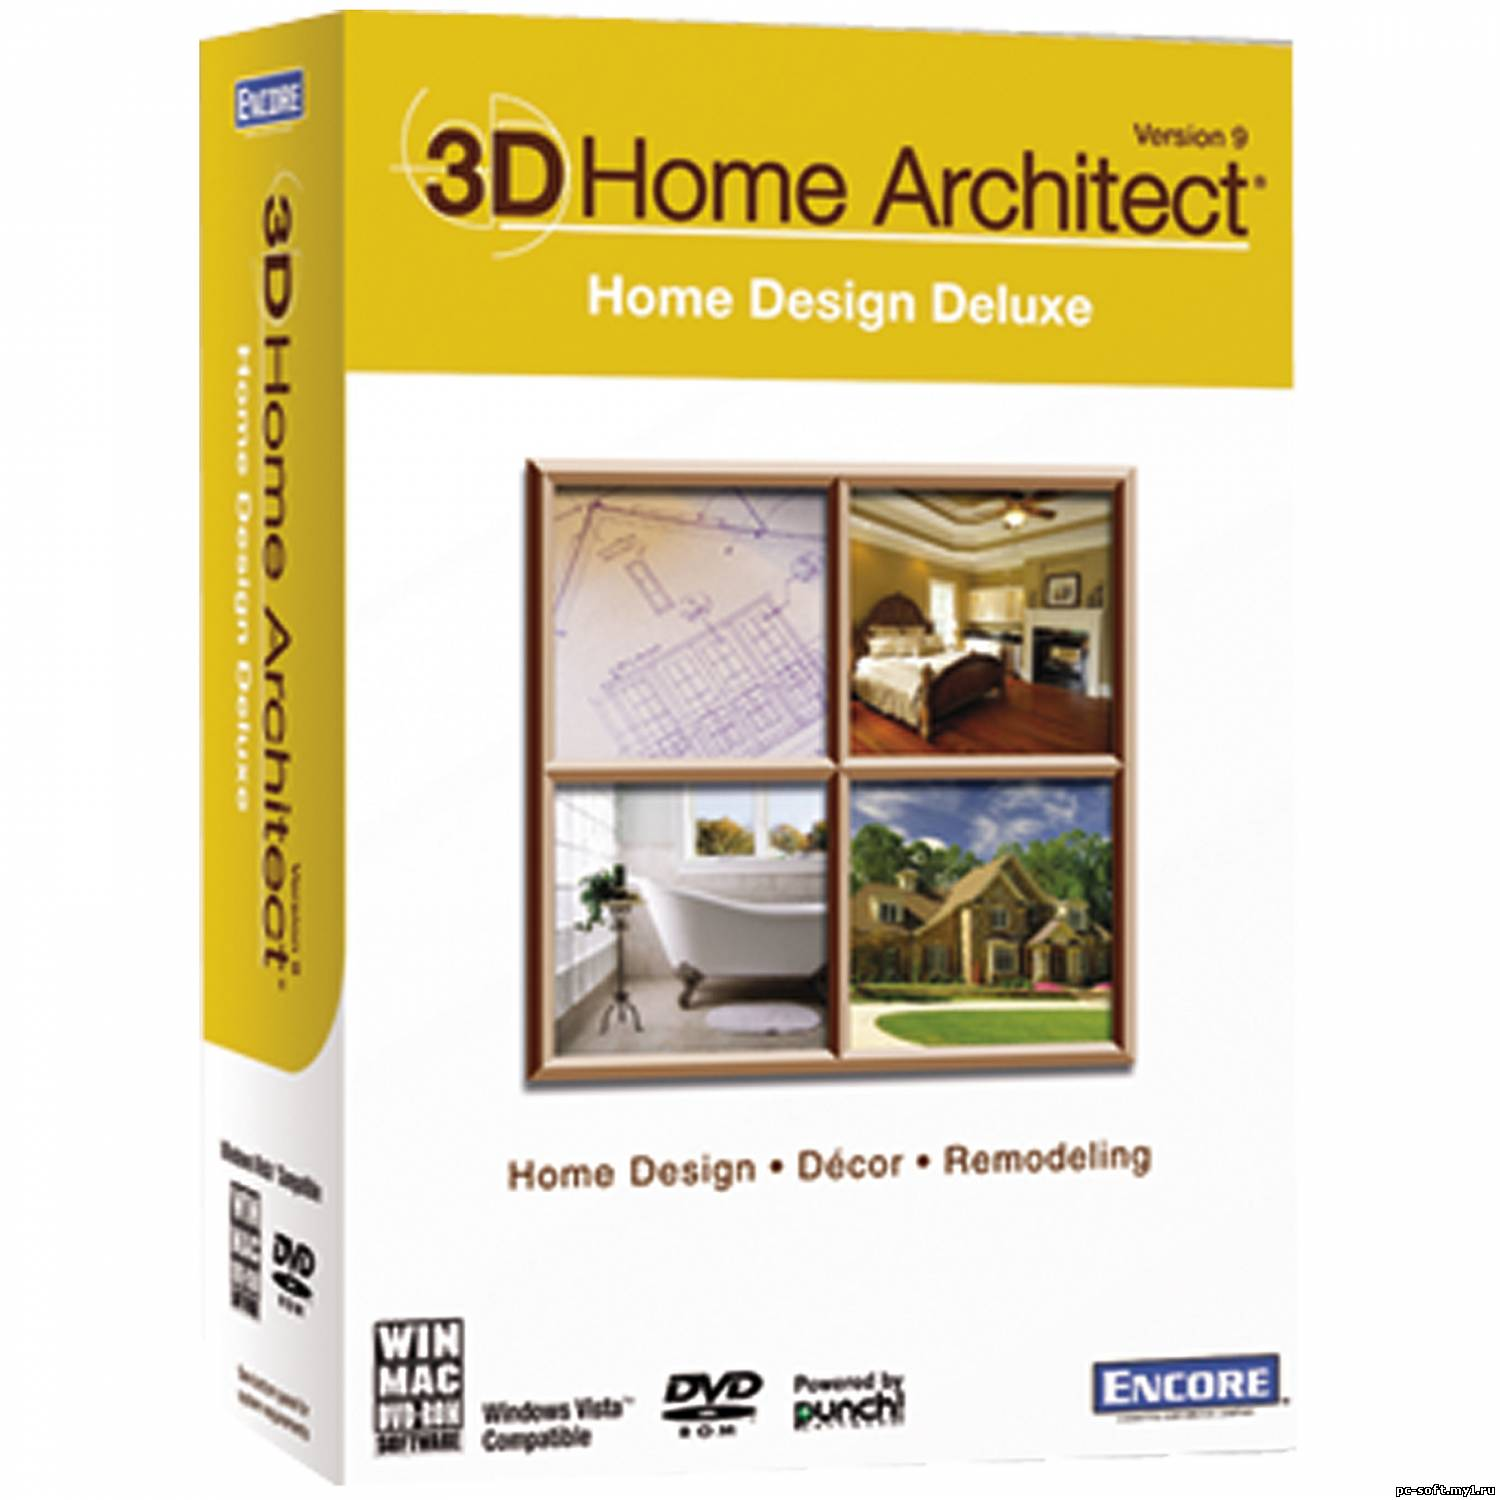 3d home architect design deluxe 8 review for 3d architecture software reviews